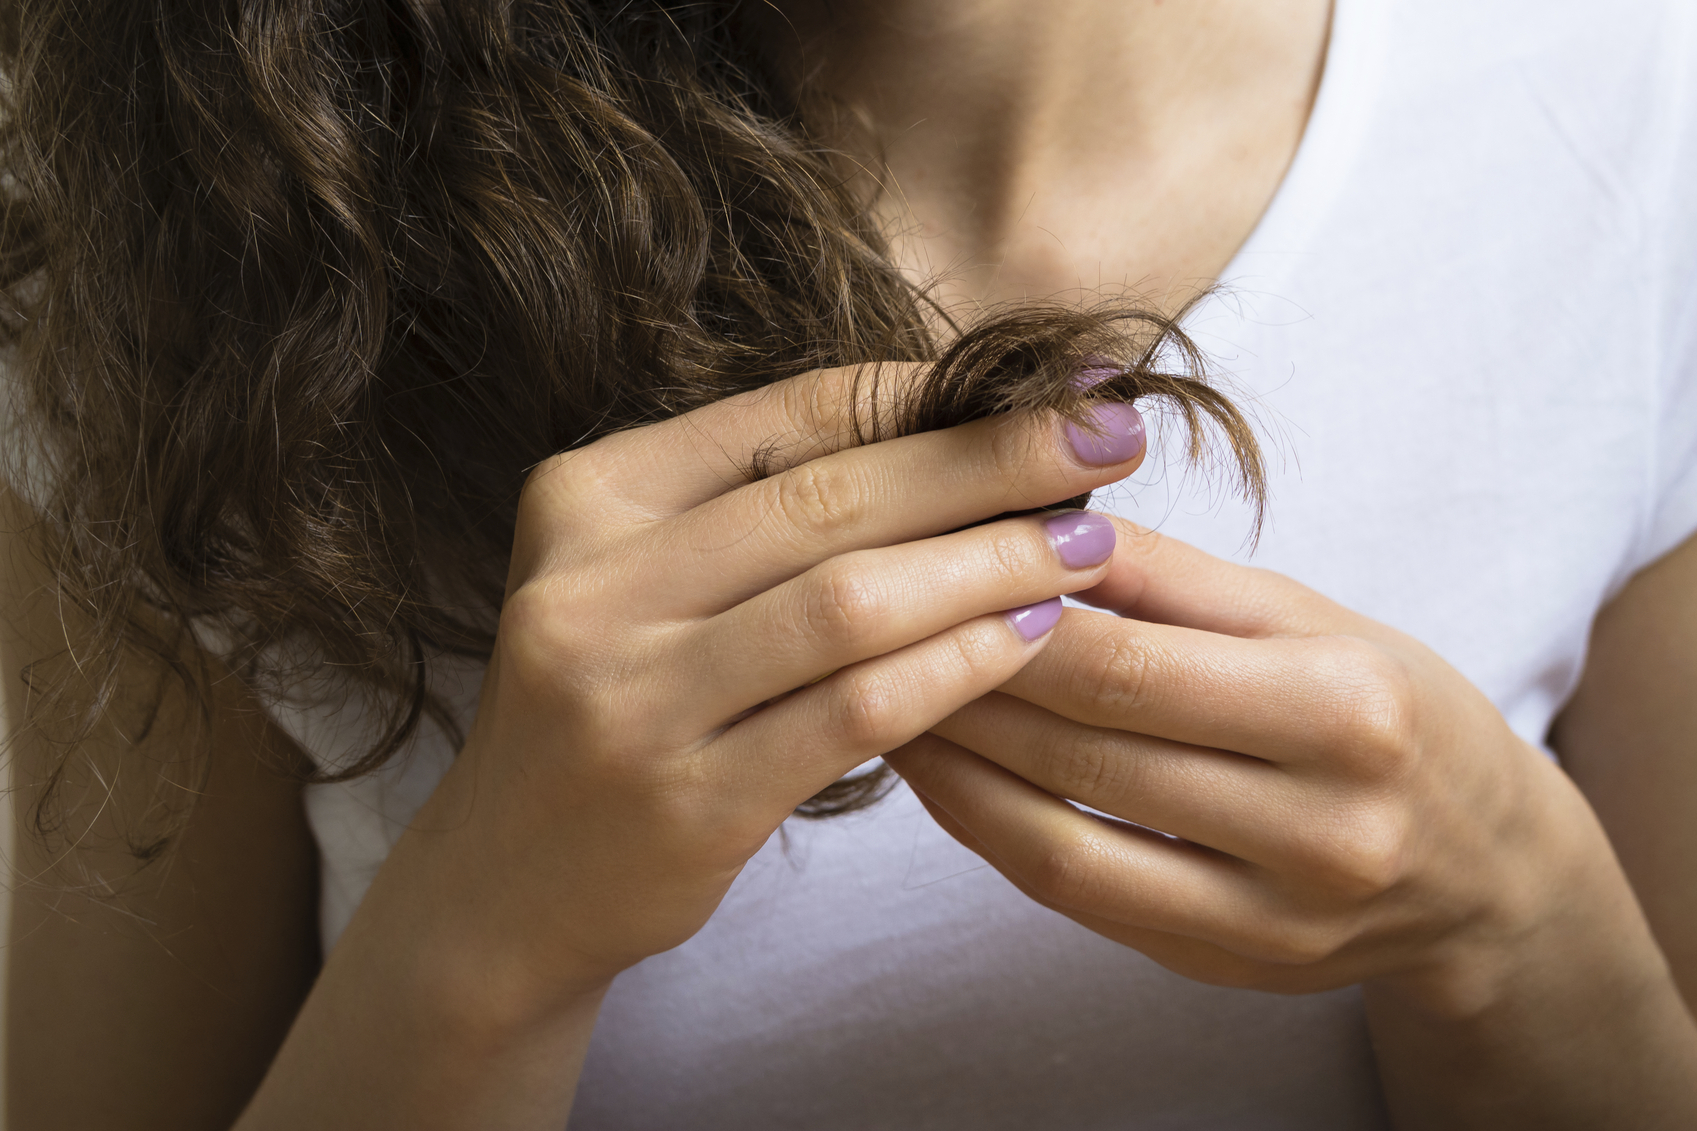 Female hand holding the hair ends